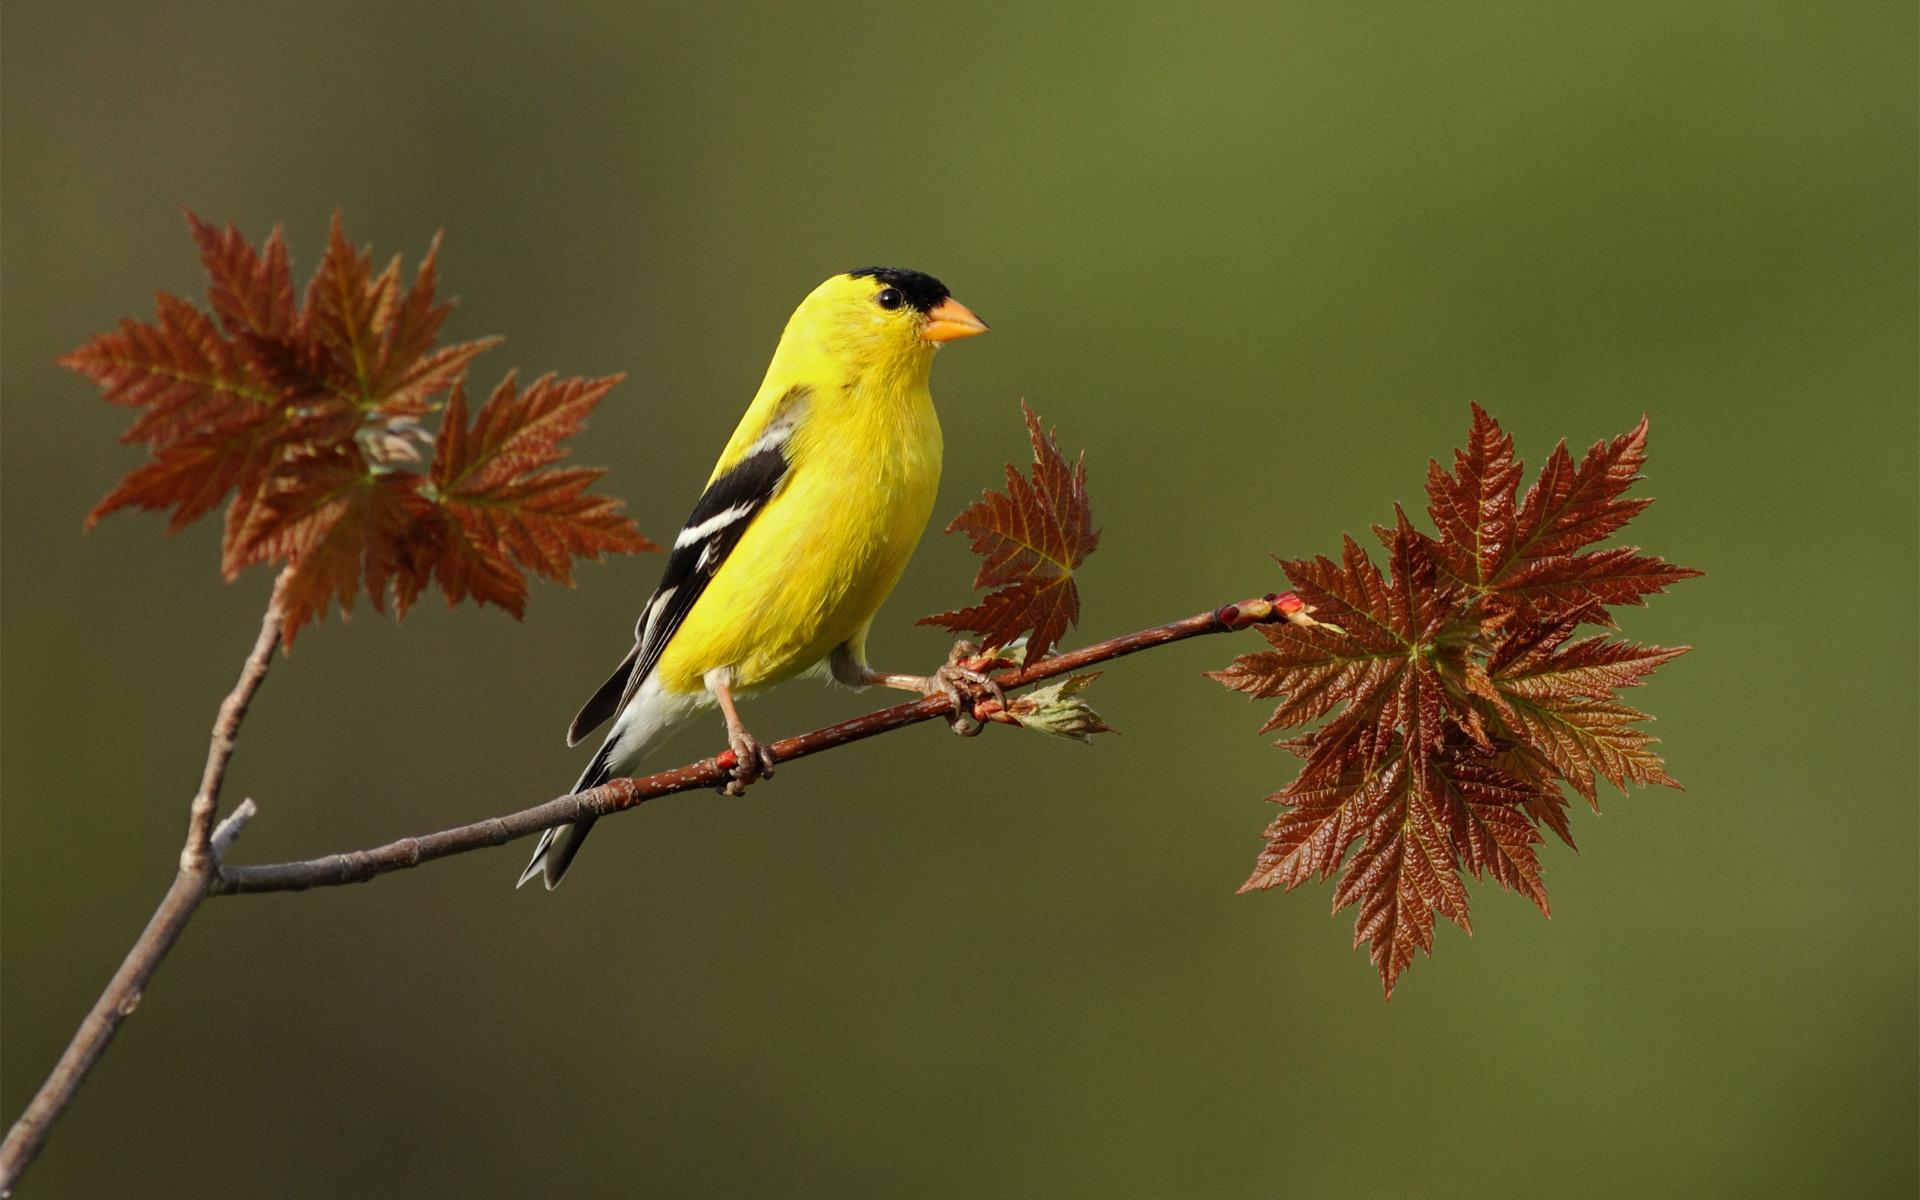 Yellow Bird On A Twig *** Hd Desktop Wallpaper